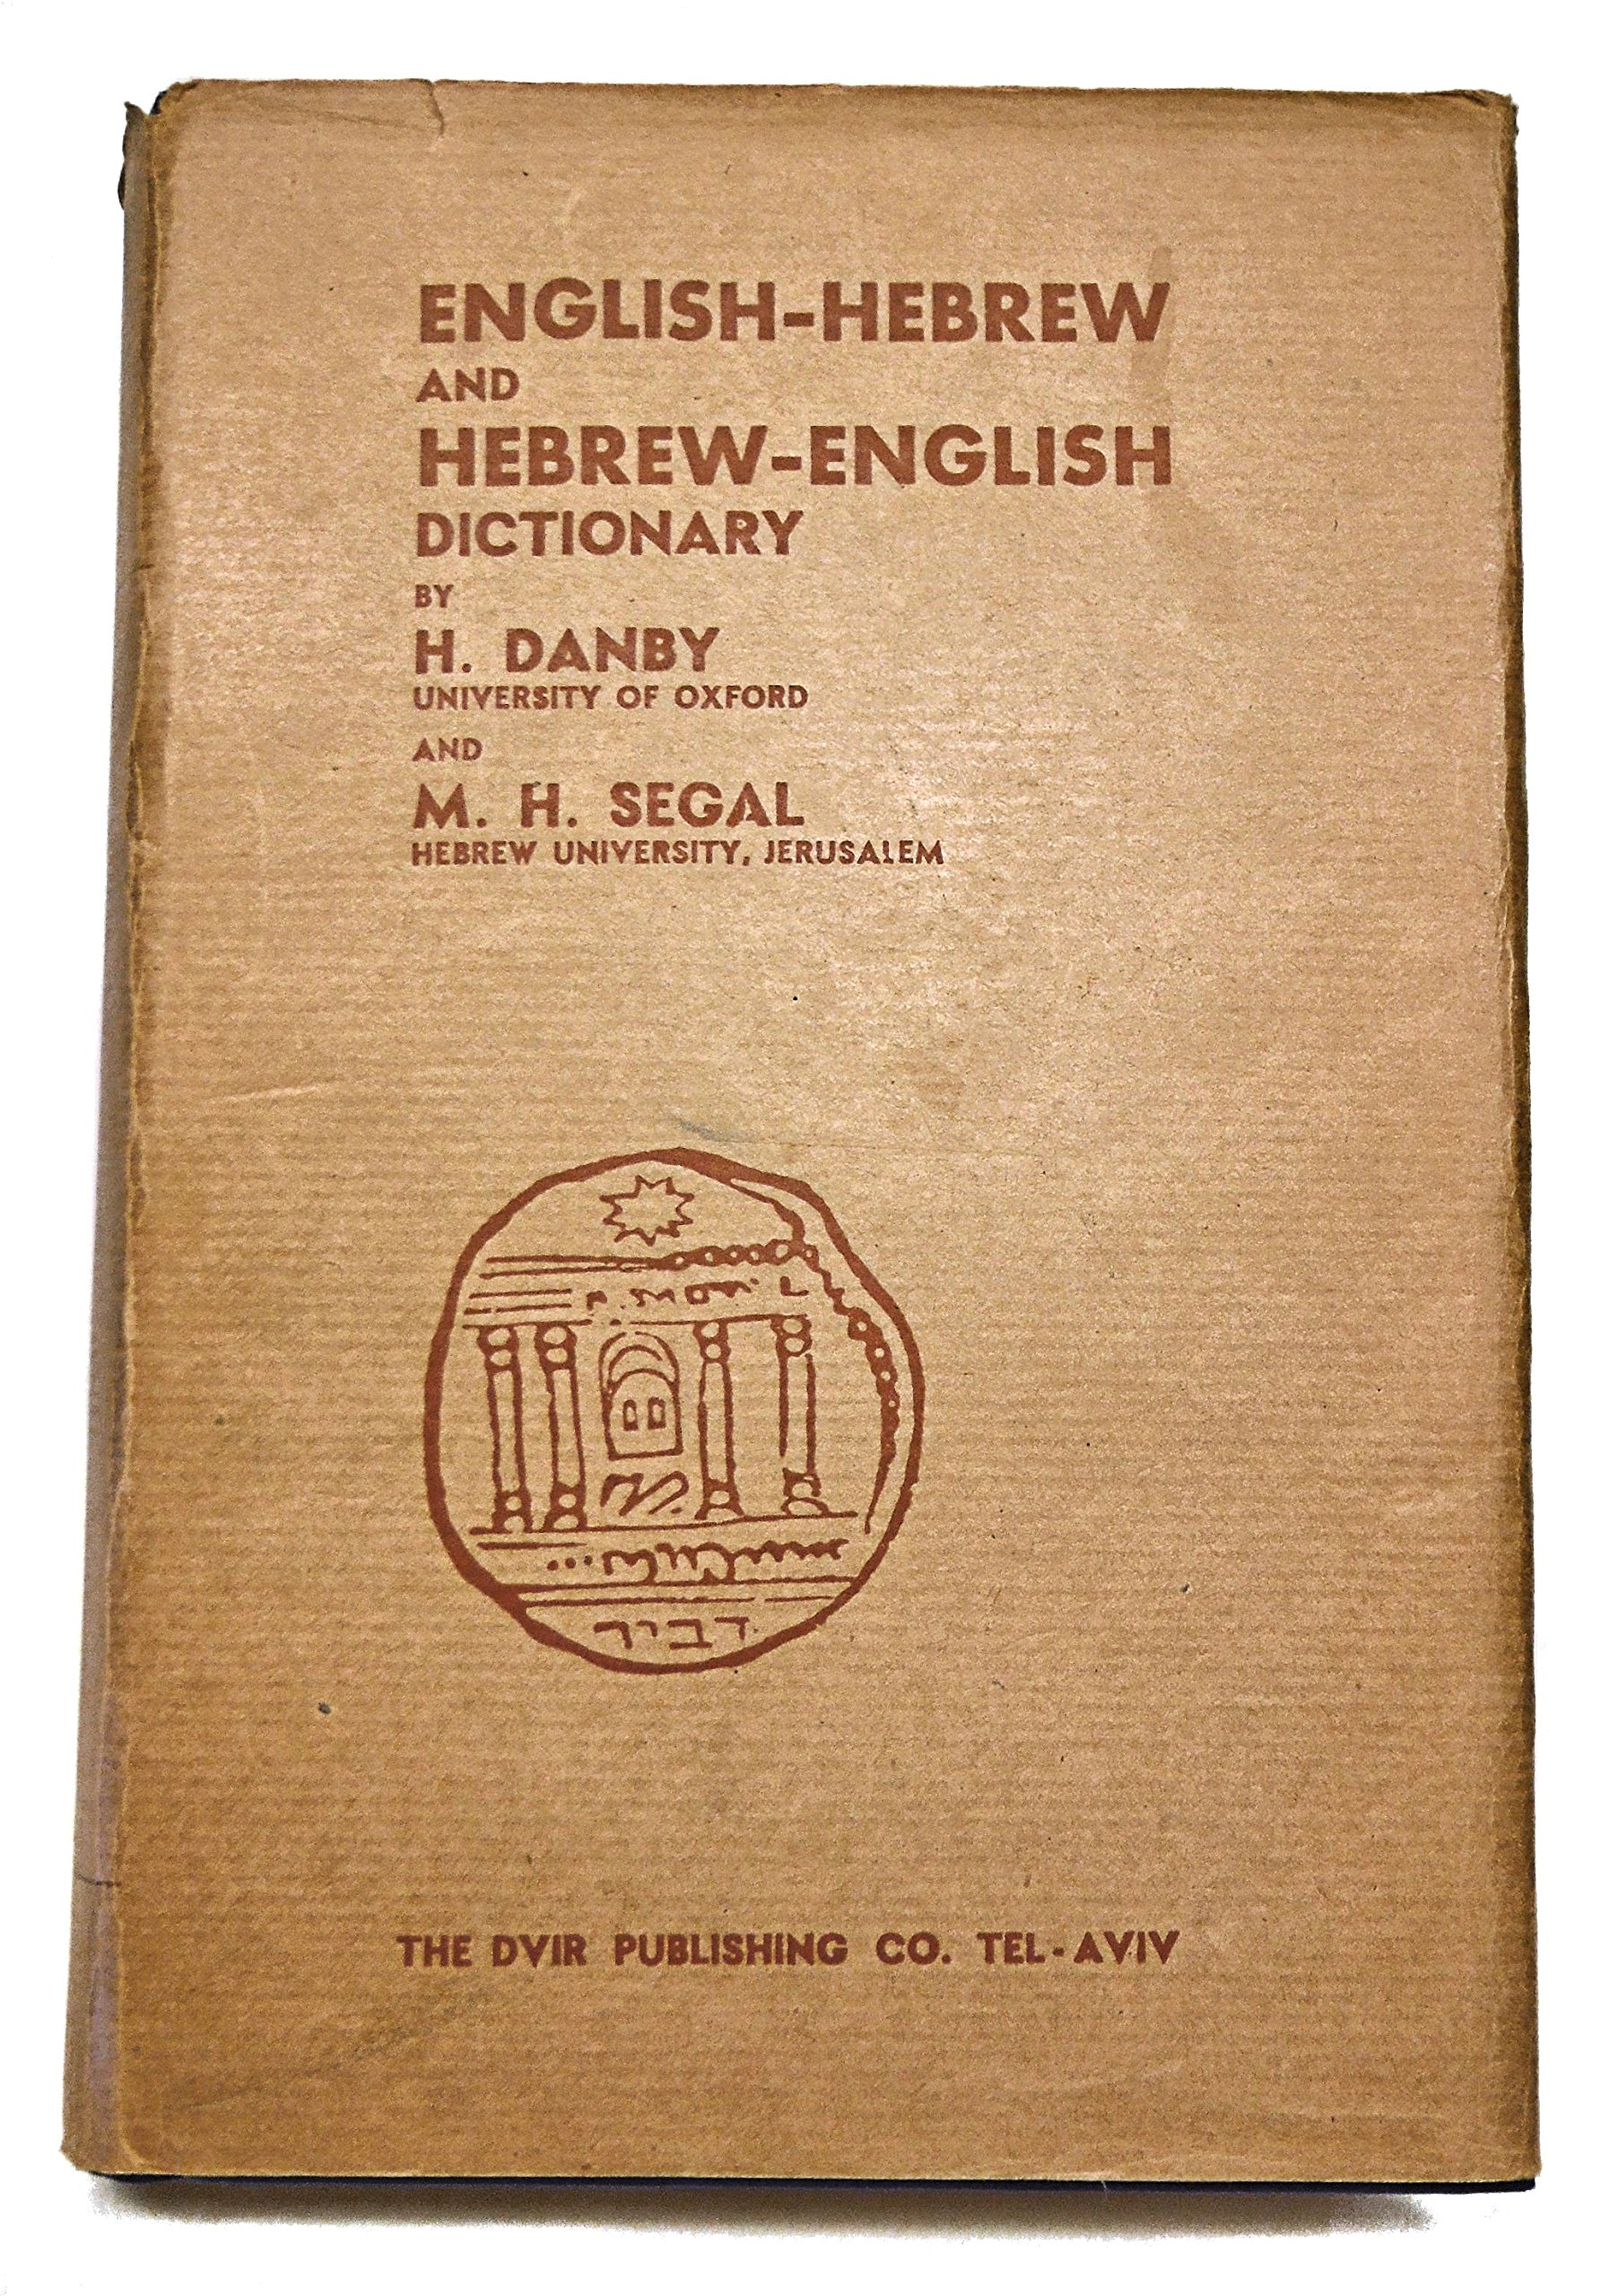 A CONCISE ENGLISH-HEBREW DICTIONARY with the English Pronunciation